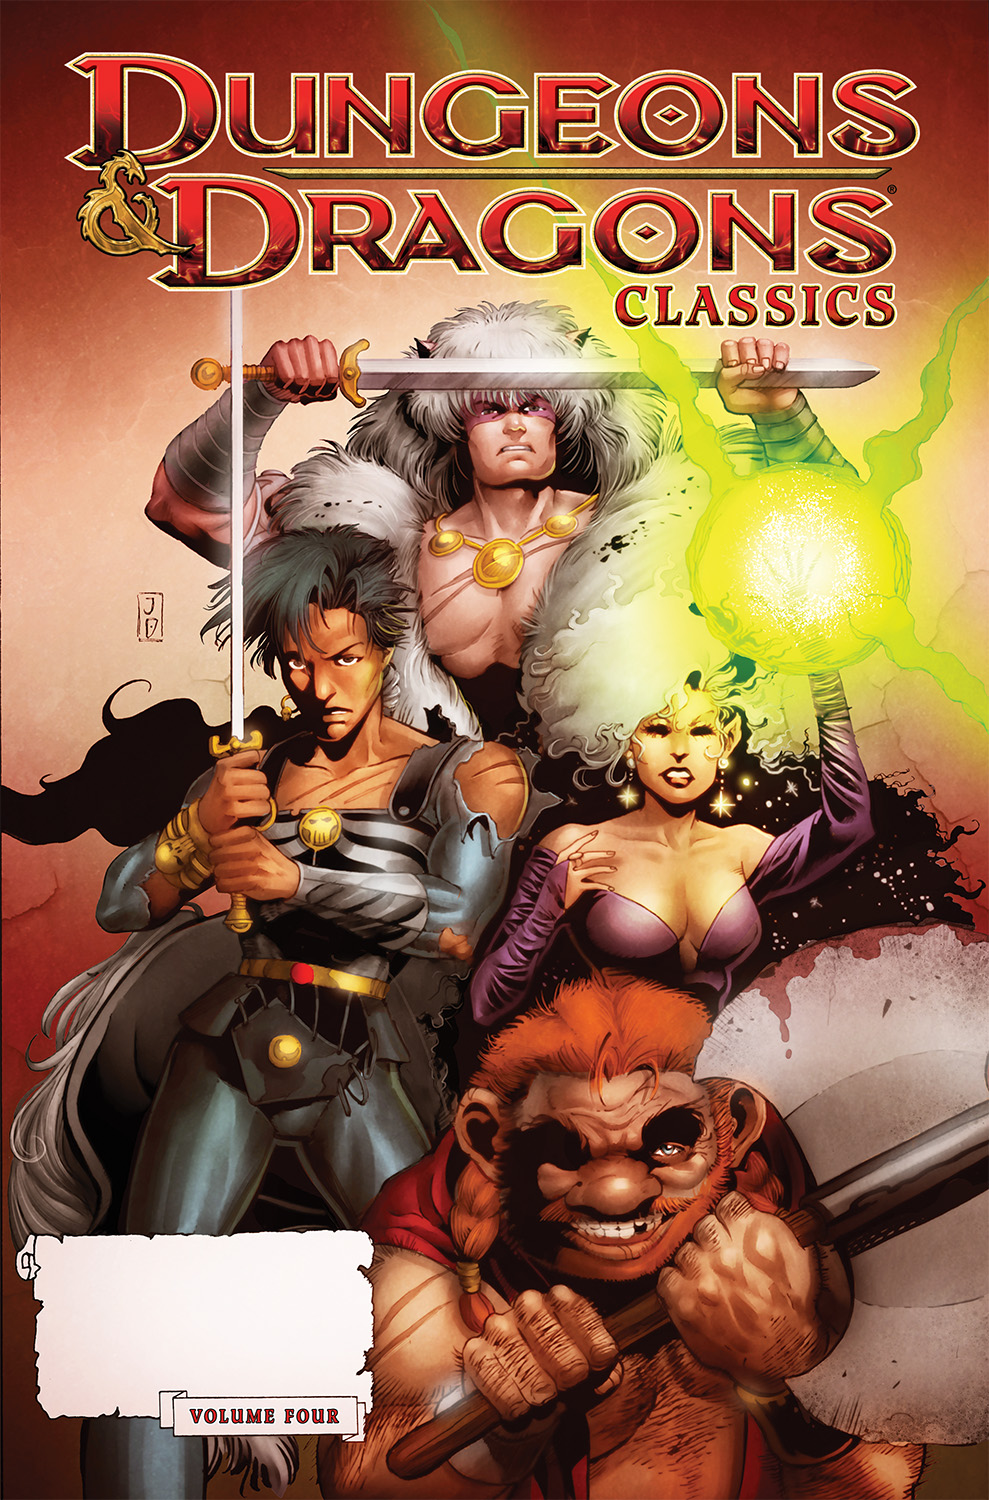 Dungeons & Dragons: Classics Vol 4